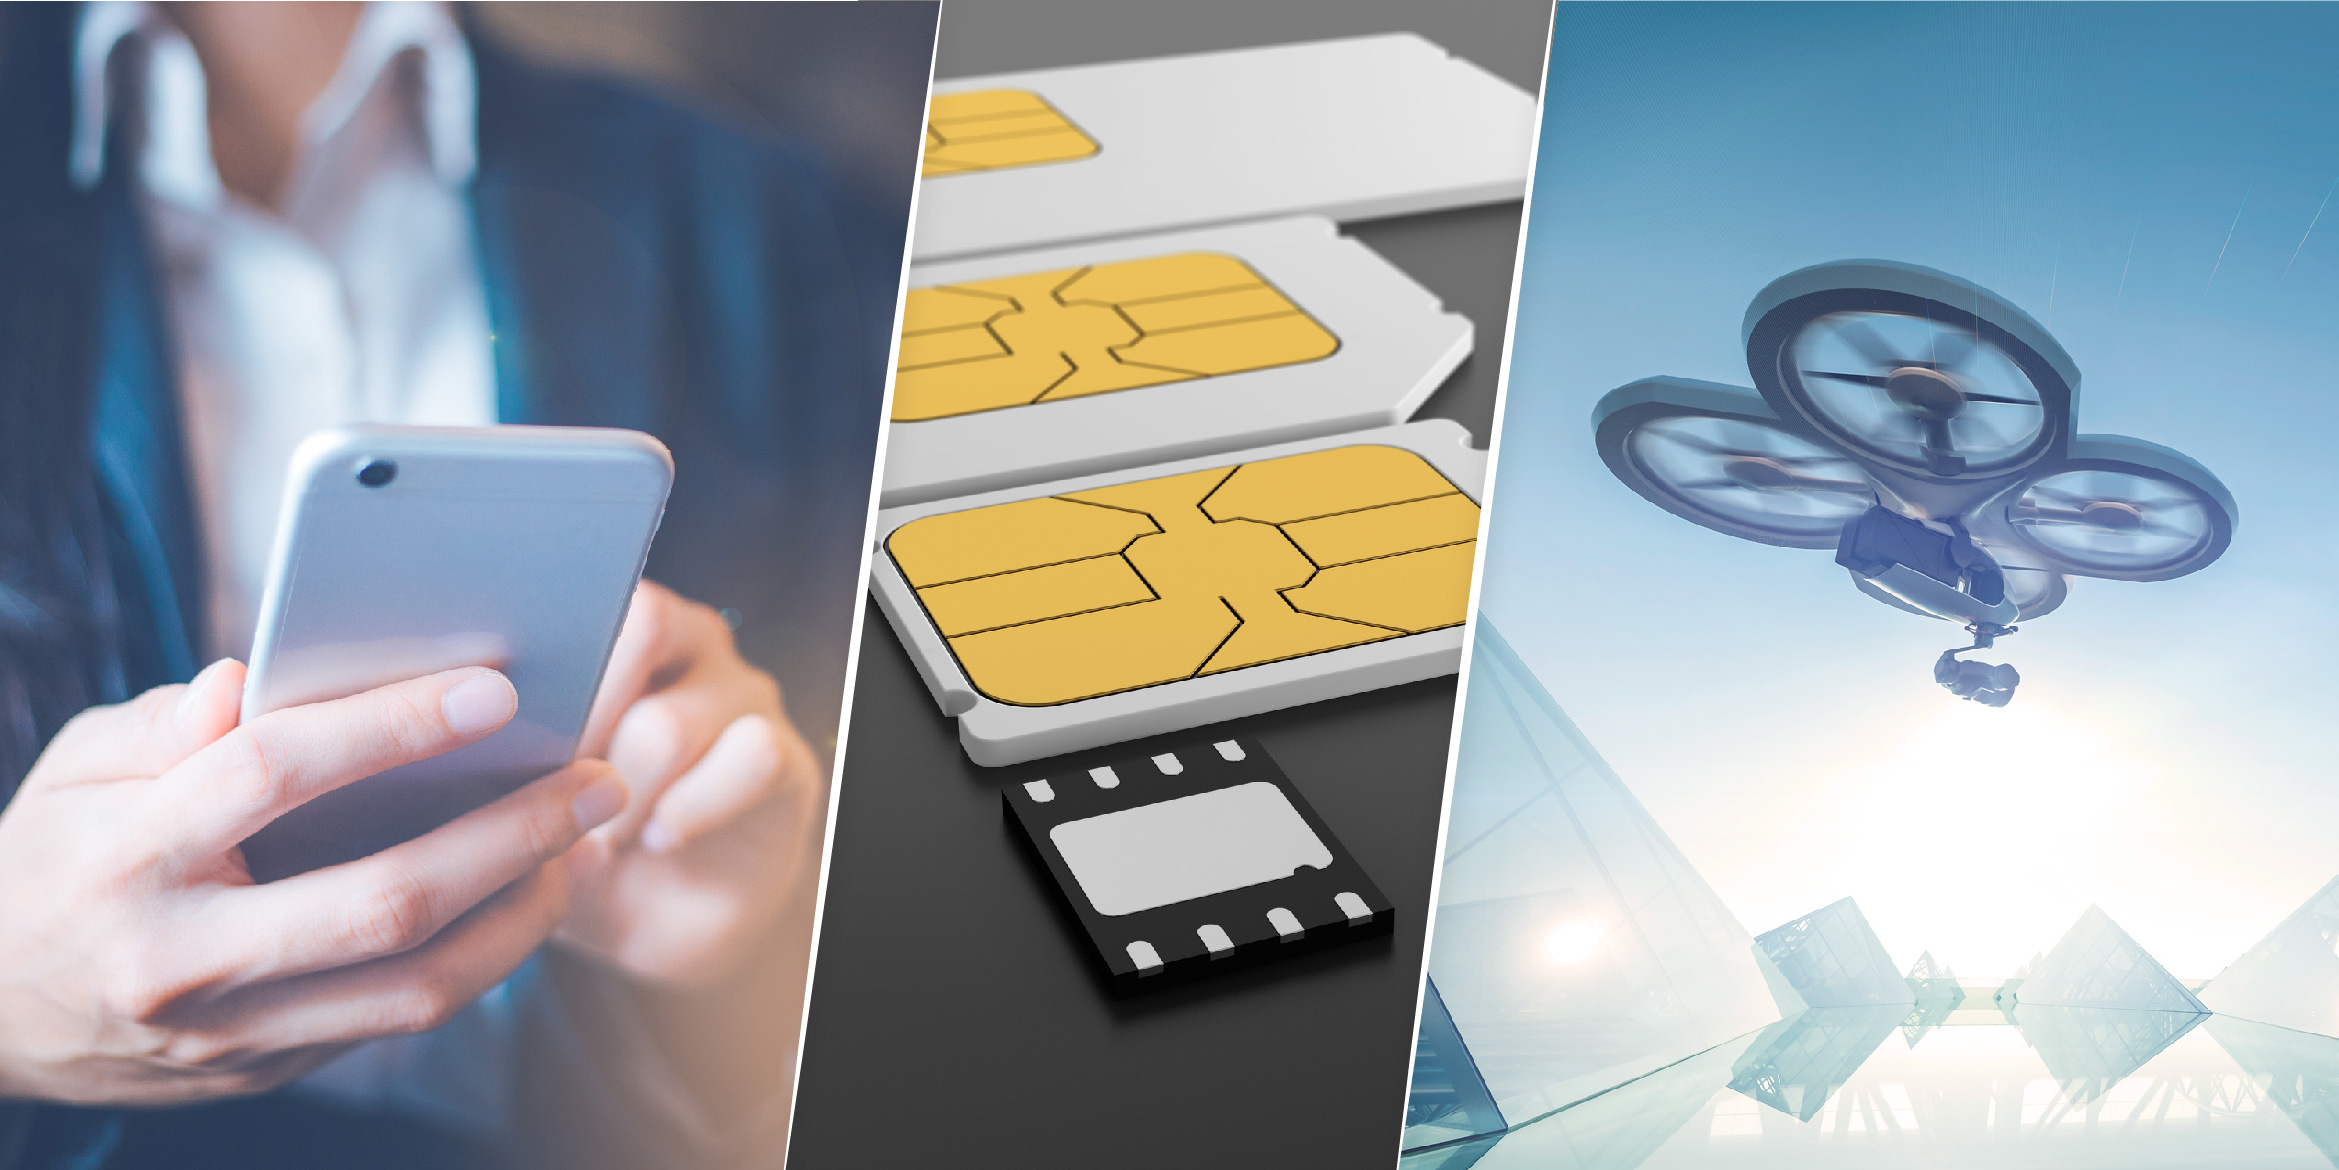 The Difference between a Regular Smartphone SIM and an IoT